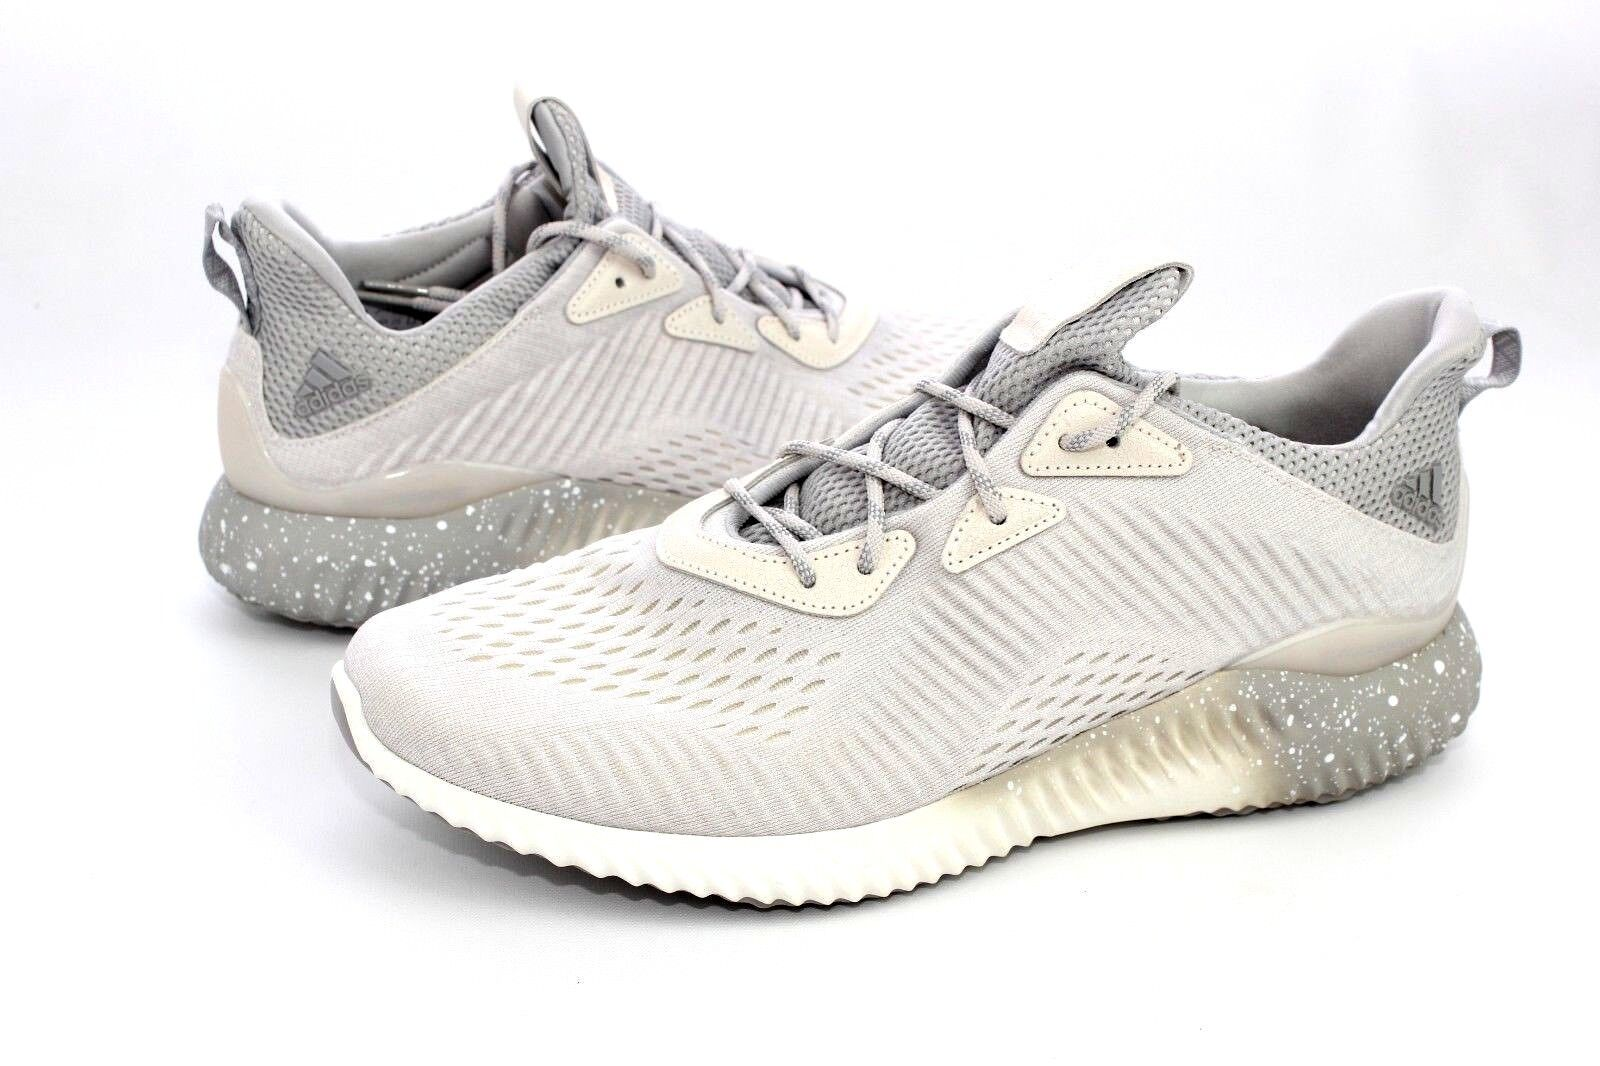 Adidas Mens Alphabounce 1 X Reigning Champ White Grey Mens Size 12 US